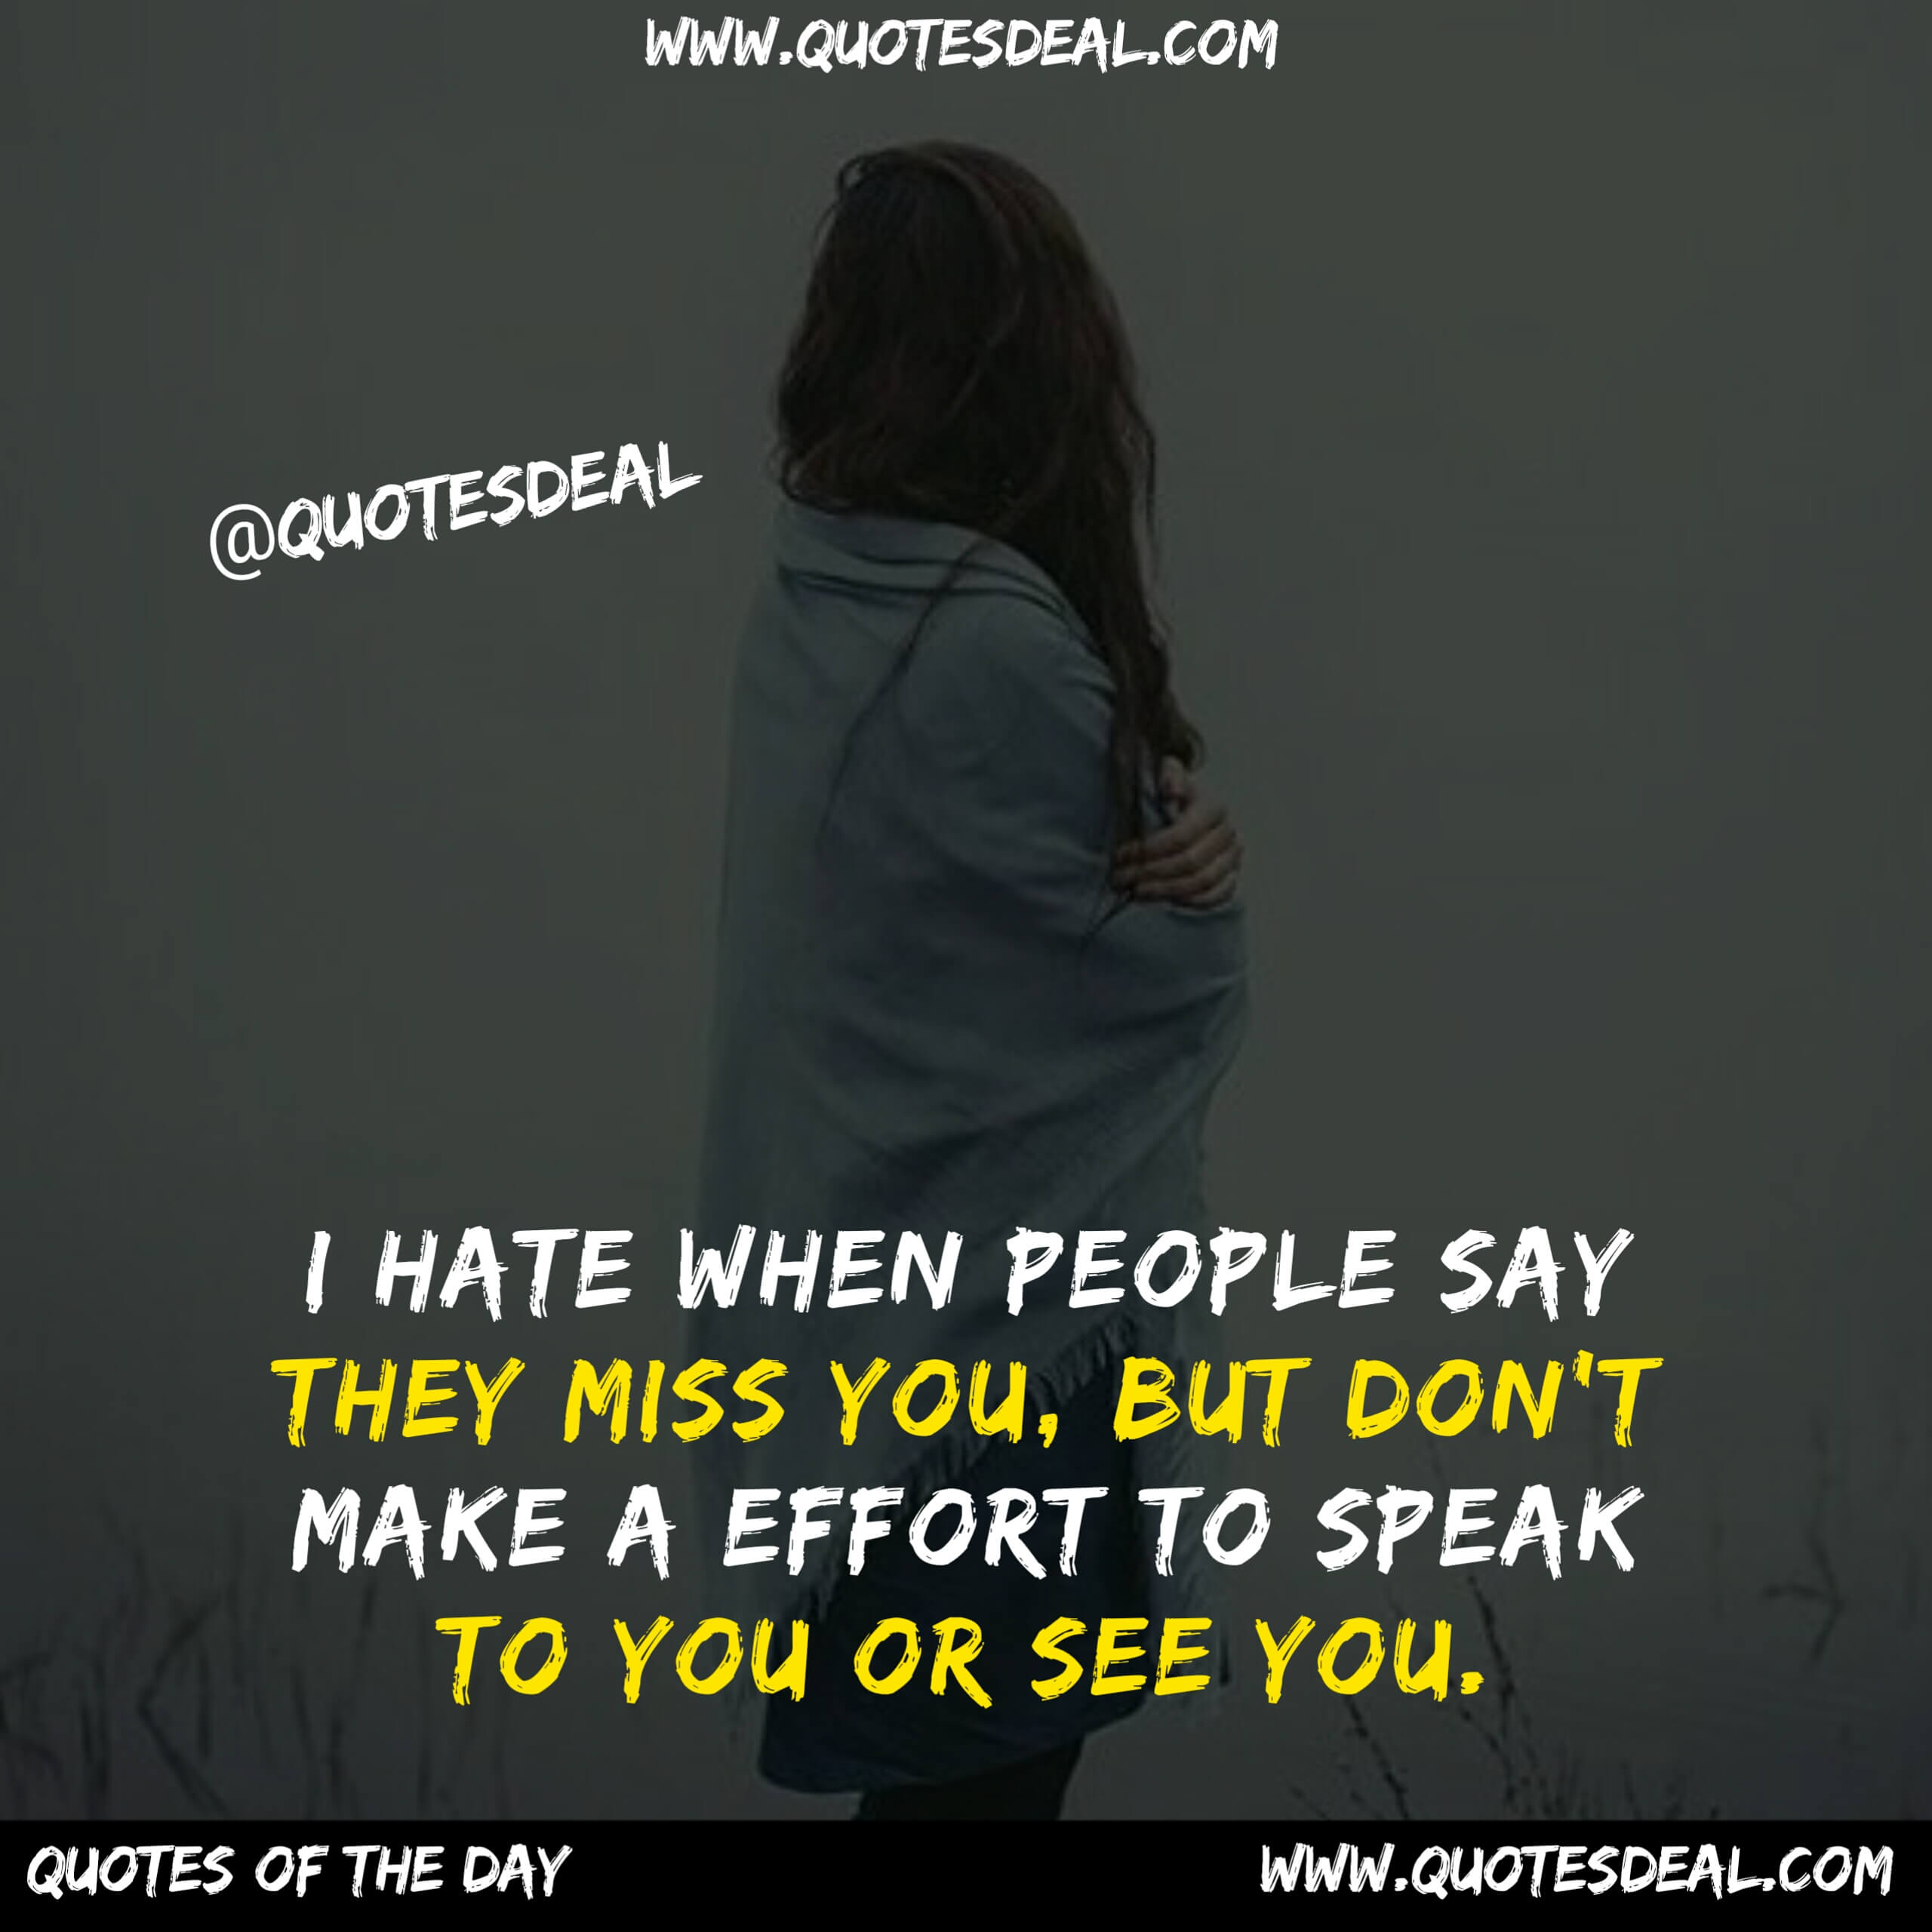 I hate when people say